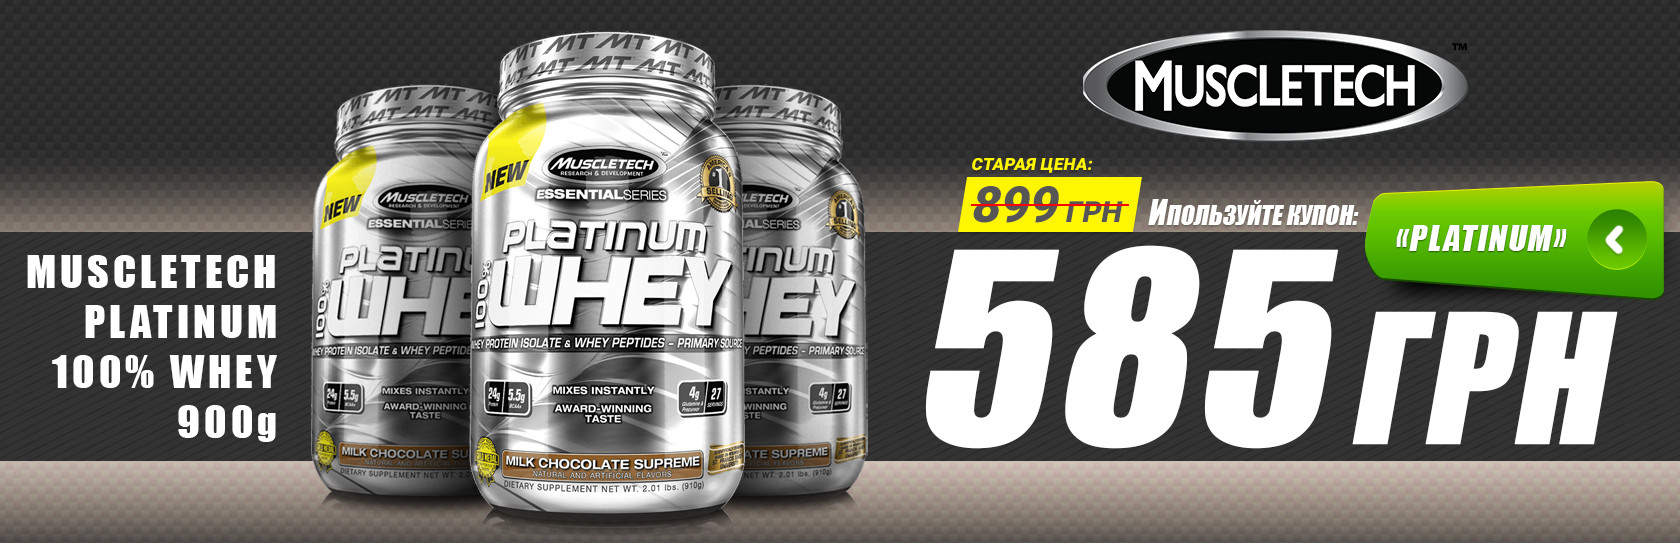 MuscleTech_platinum_whey599